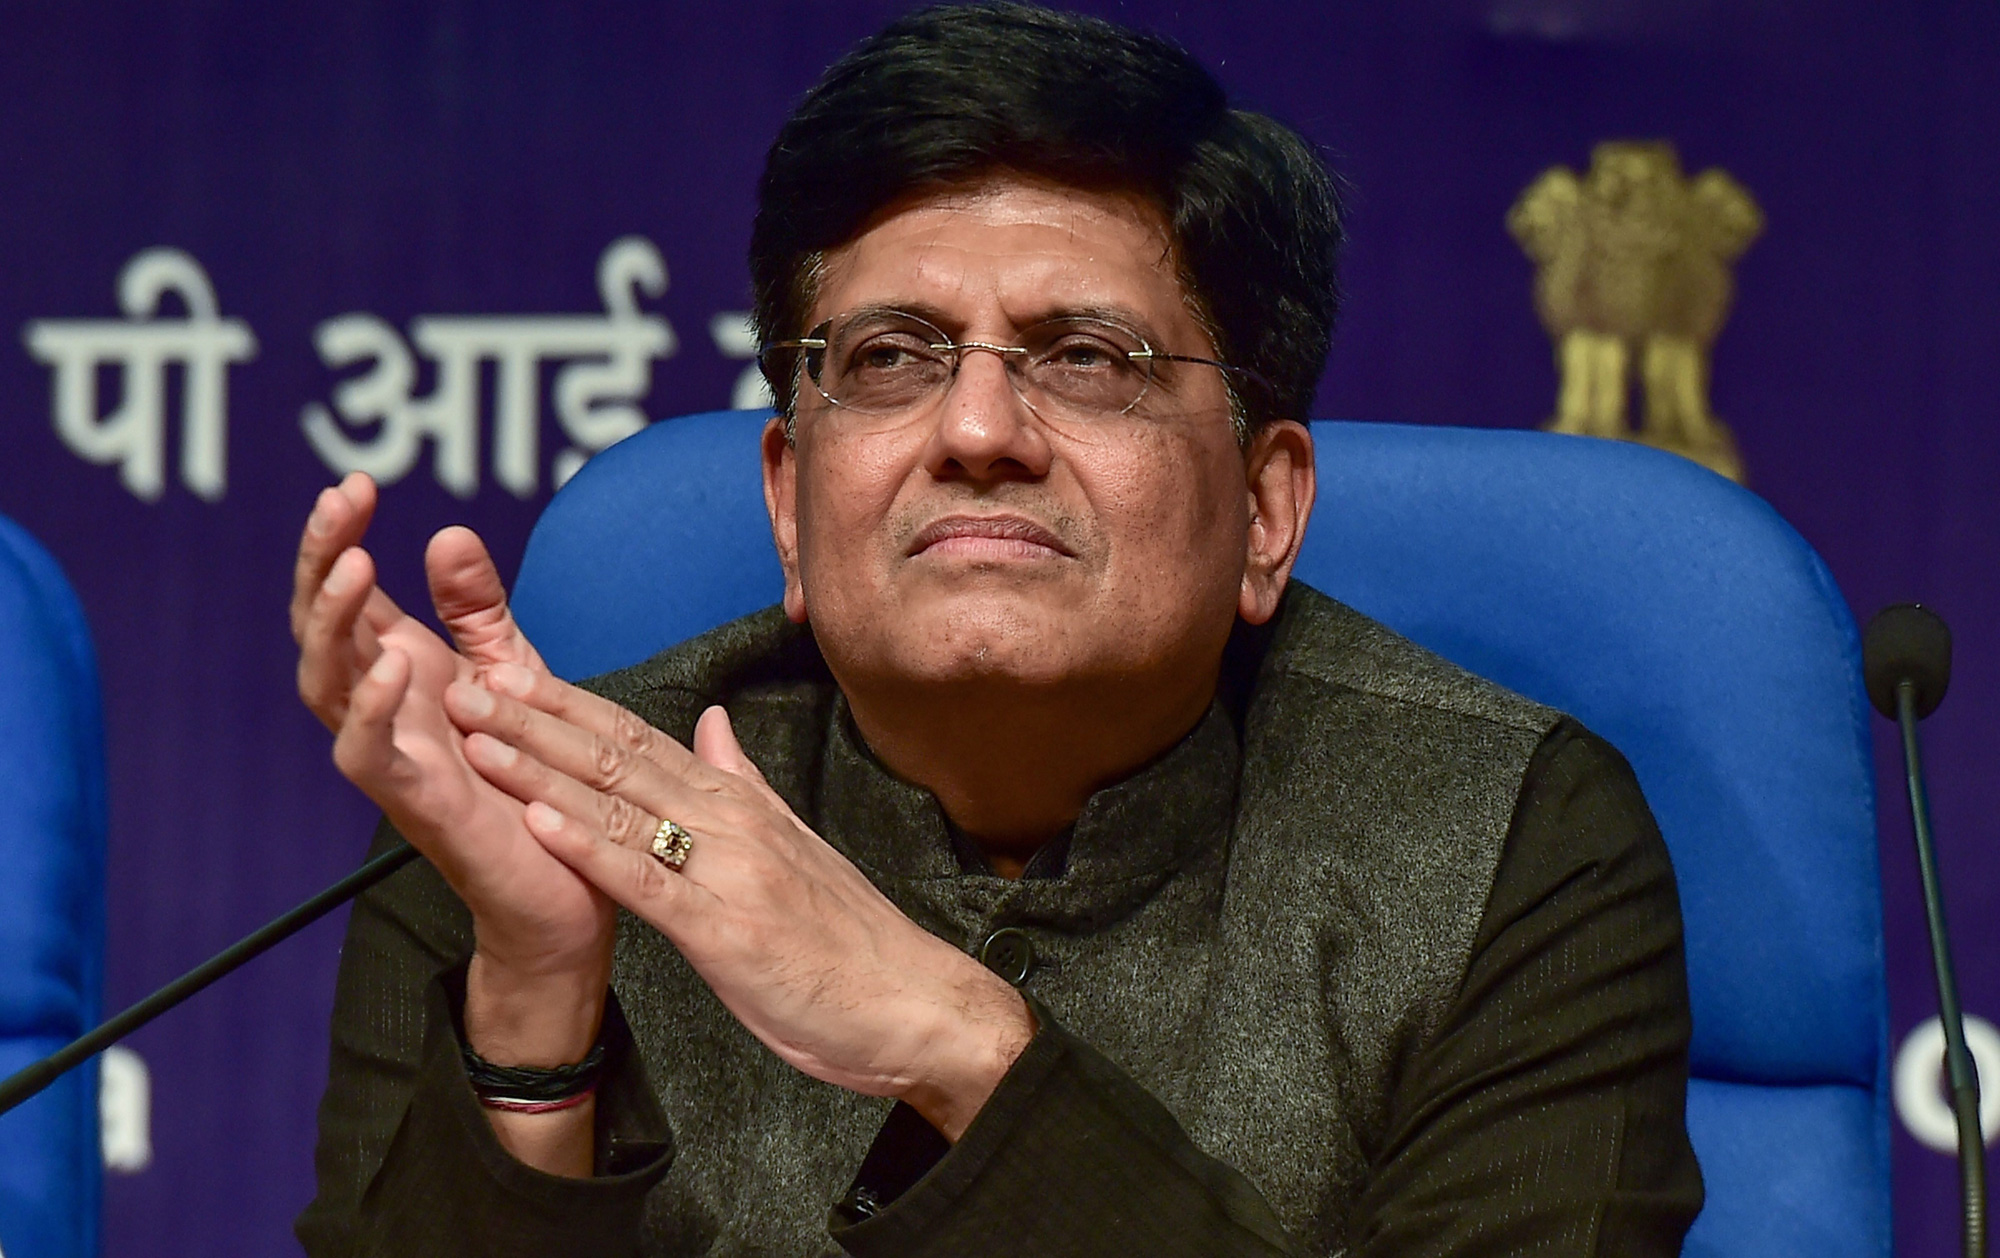 Interim finance minister Piyush Goyal's budget speech is, arguably, the most explicitly political one that India has ever witnessed